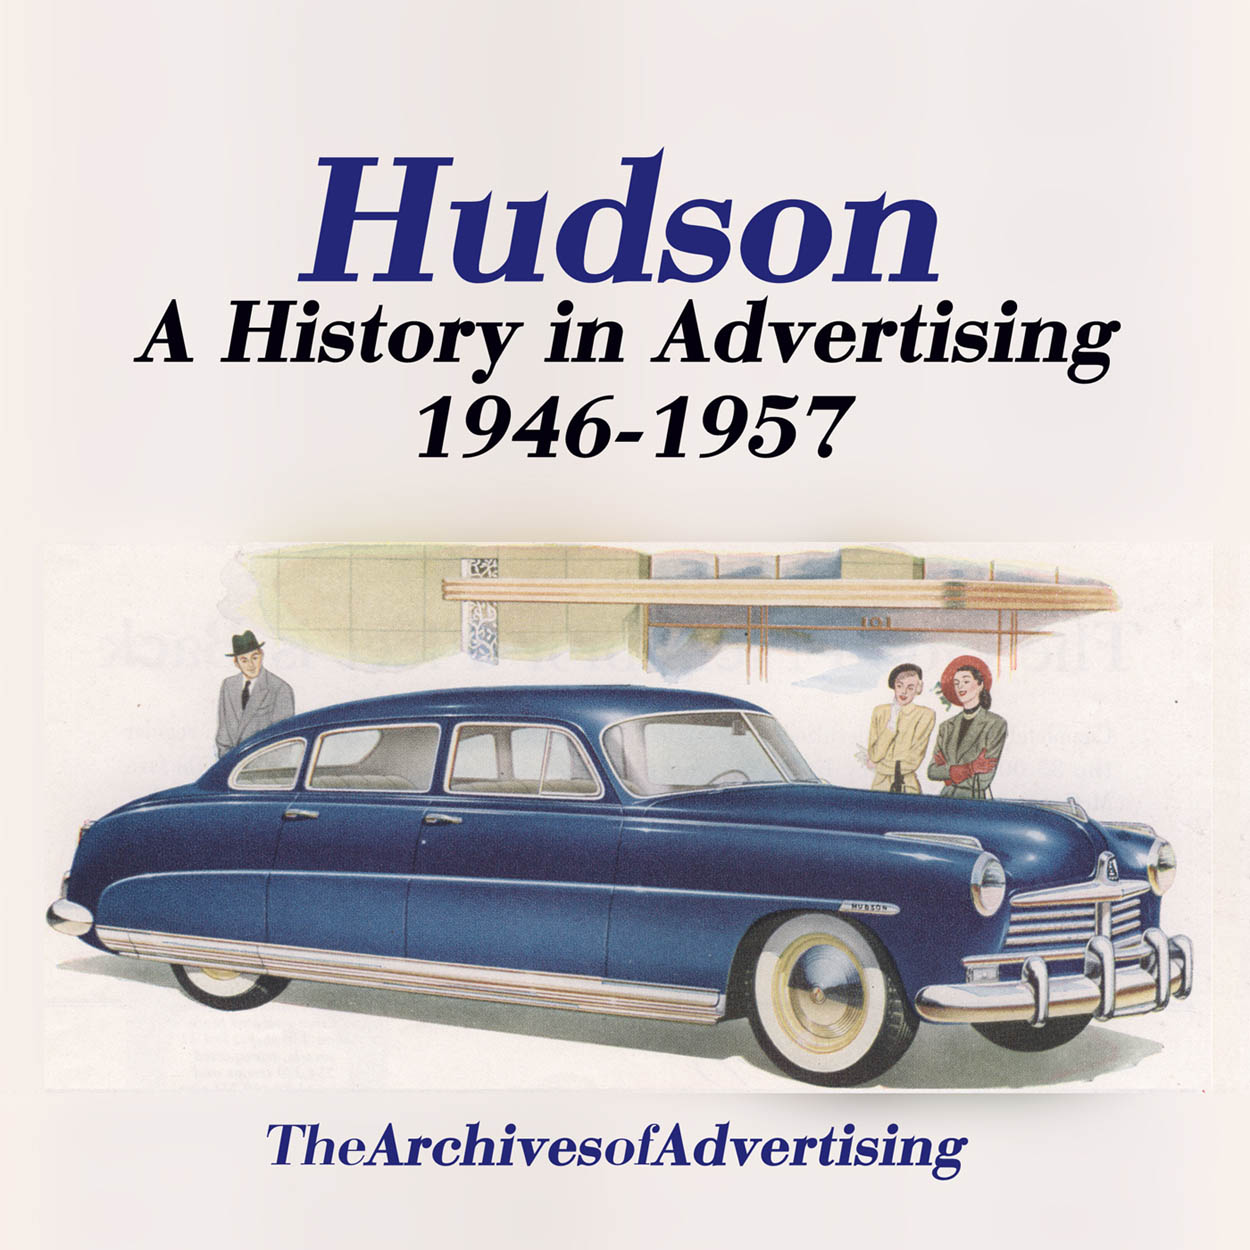 1946 1947 1948 1949 1950 1951 1952 1953 1954-1957 Hudson ad CD-ROM: 130+ ads!